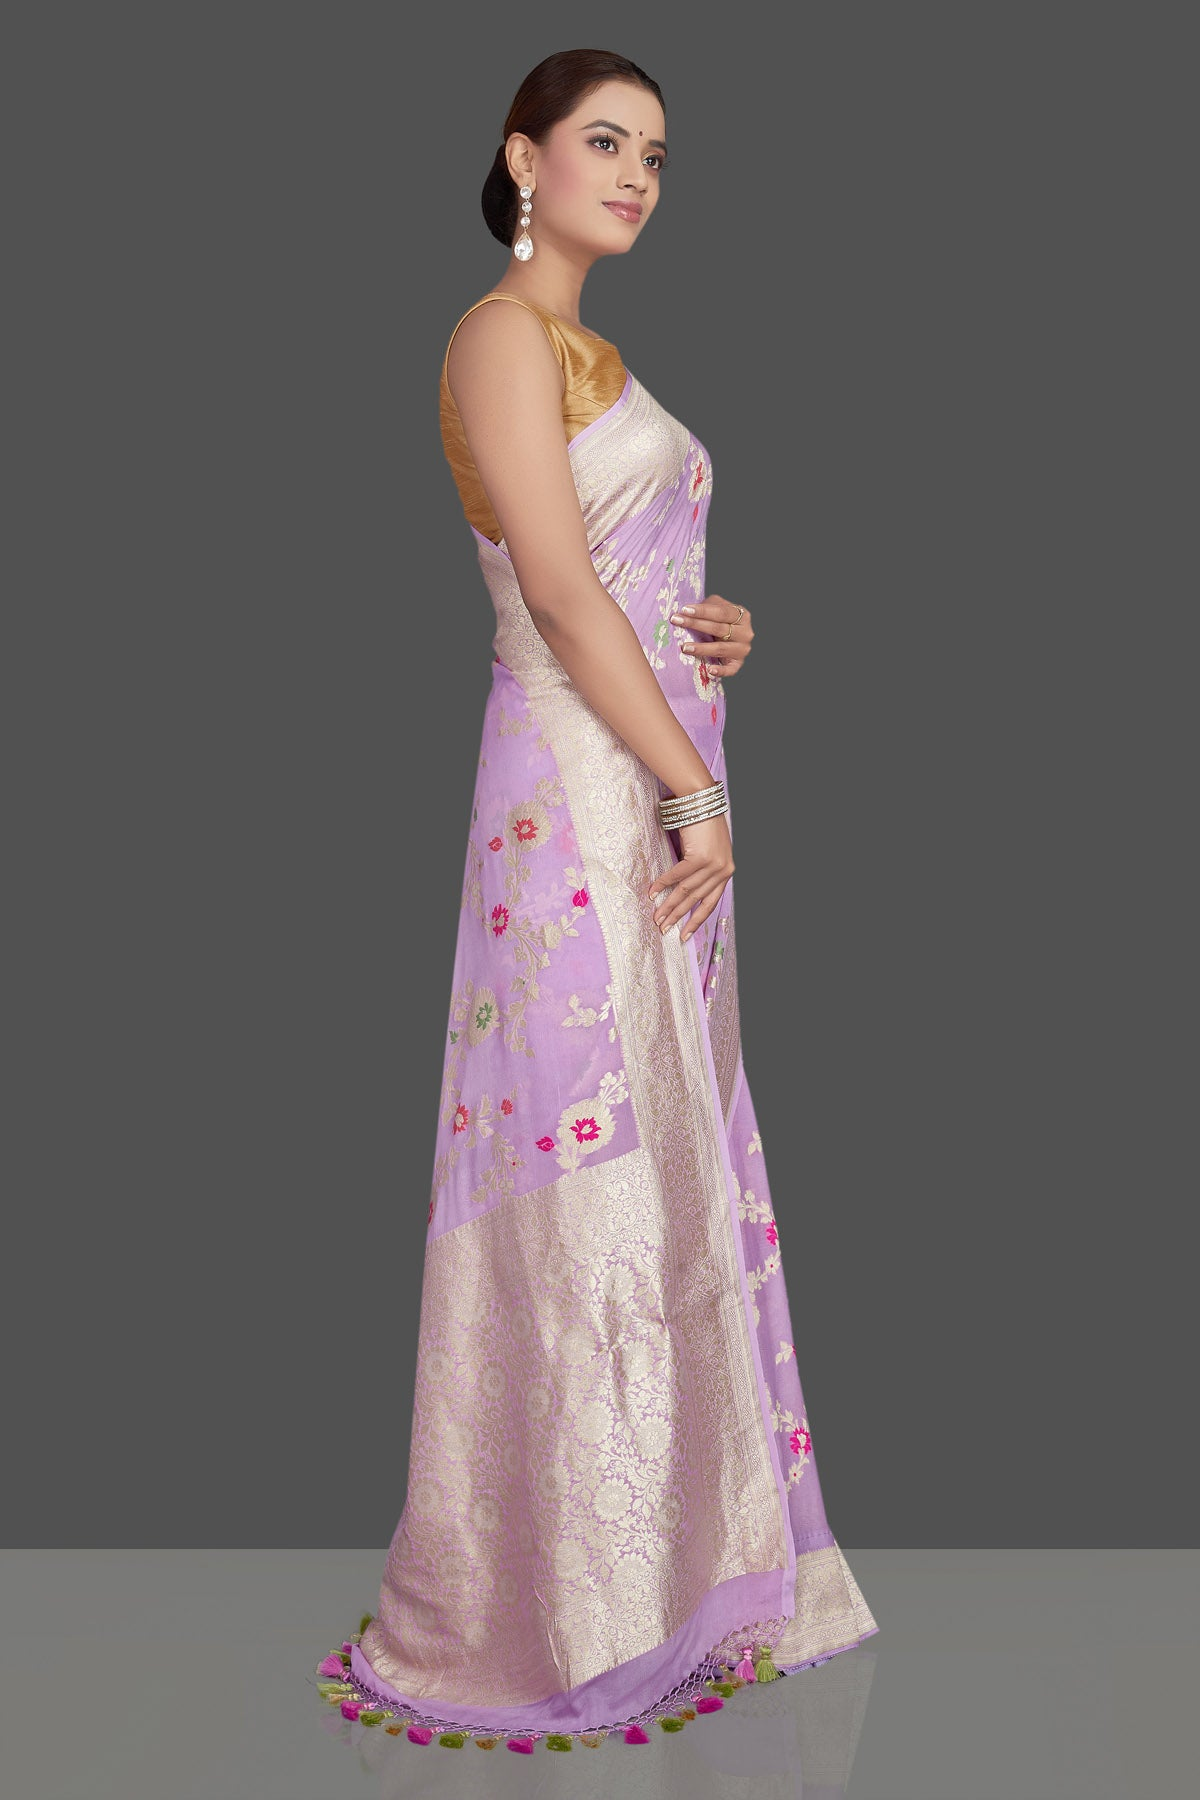 Shop beautiful lavender georgette sari online in USA with silver zari floral jaal. Make an impeccable ethnic fashion statement on festive occasions with traditional Indian sarees, pure silk sarees, designer sarees, handwoven saris, Banarasi sarees from Pure Elegance Indian saree store in USA.-right